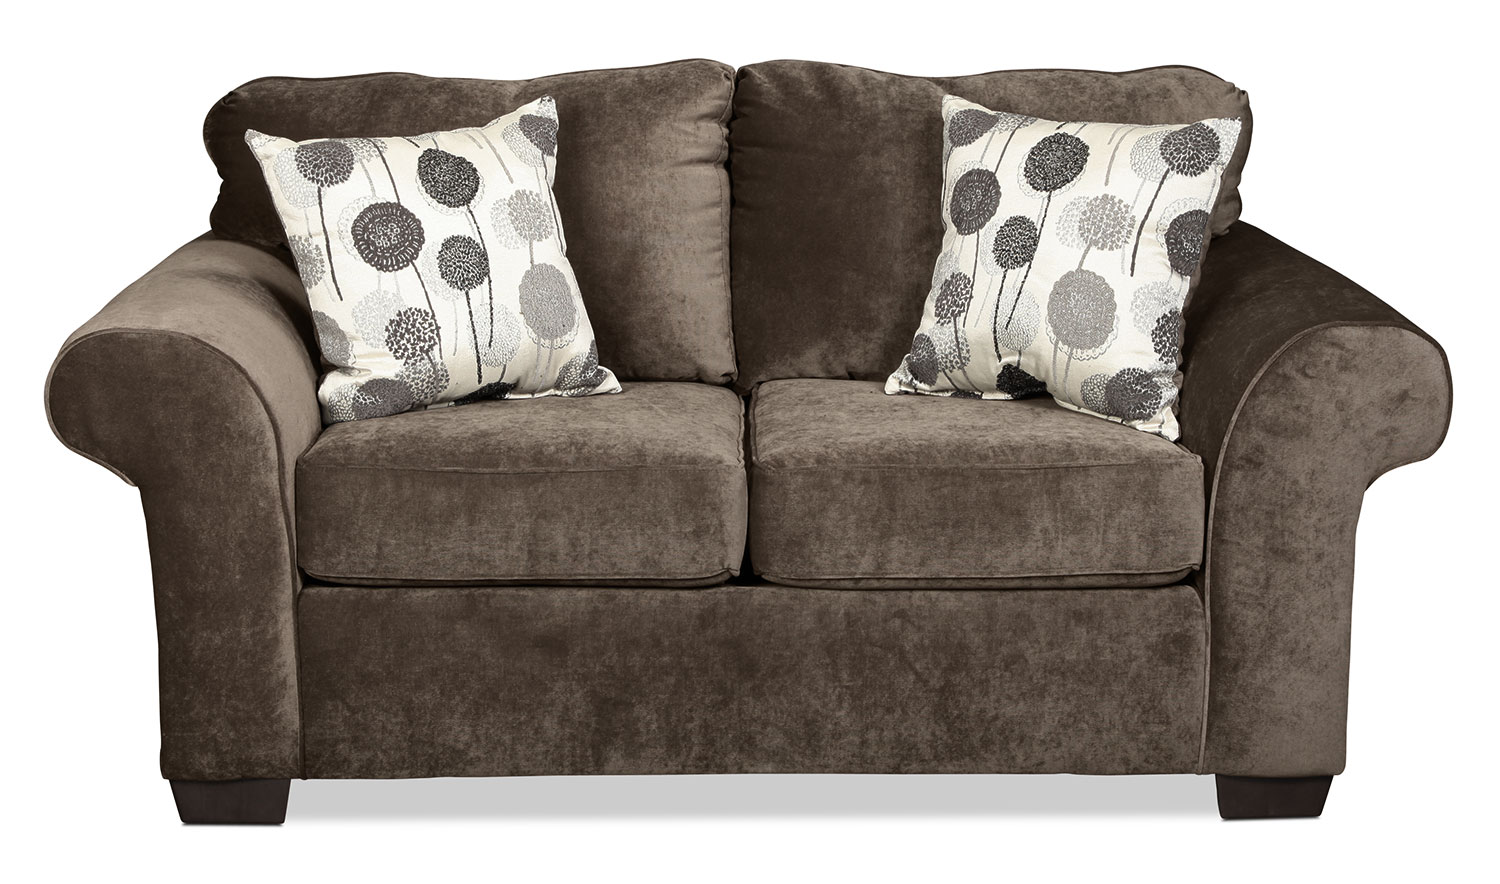 Roseville Loveseat - Ash